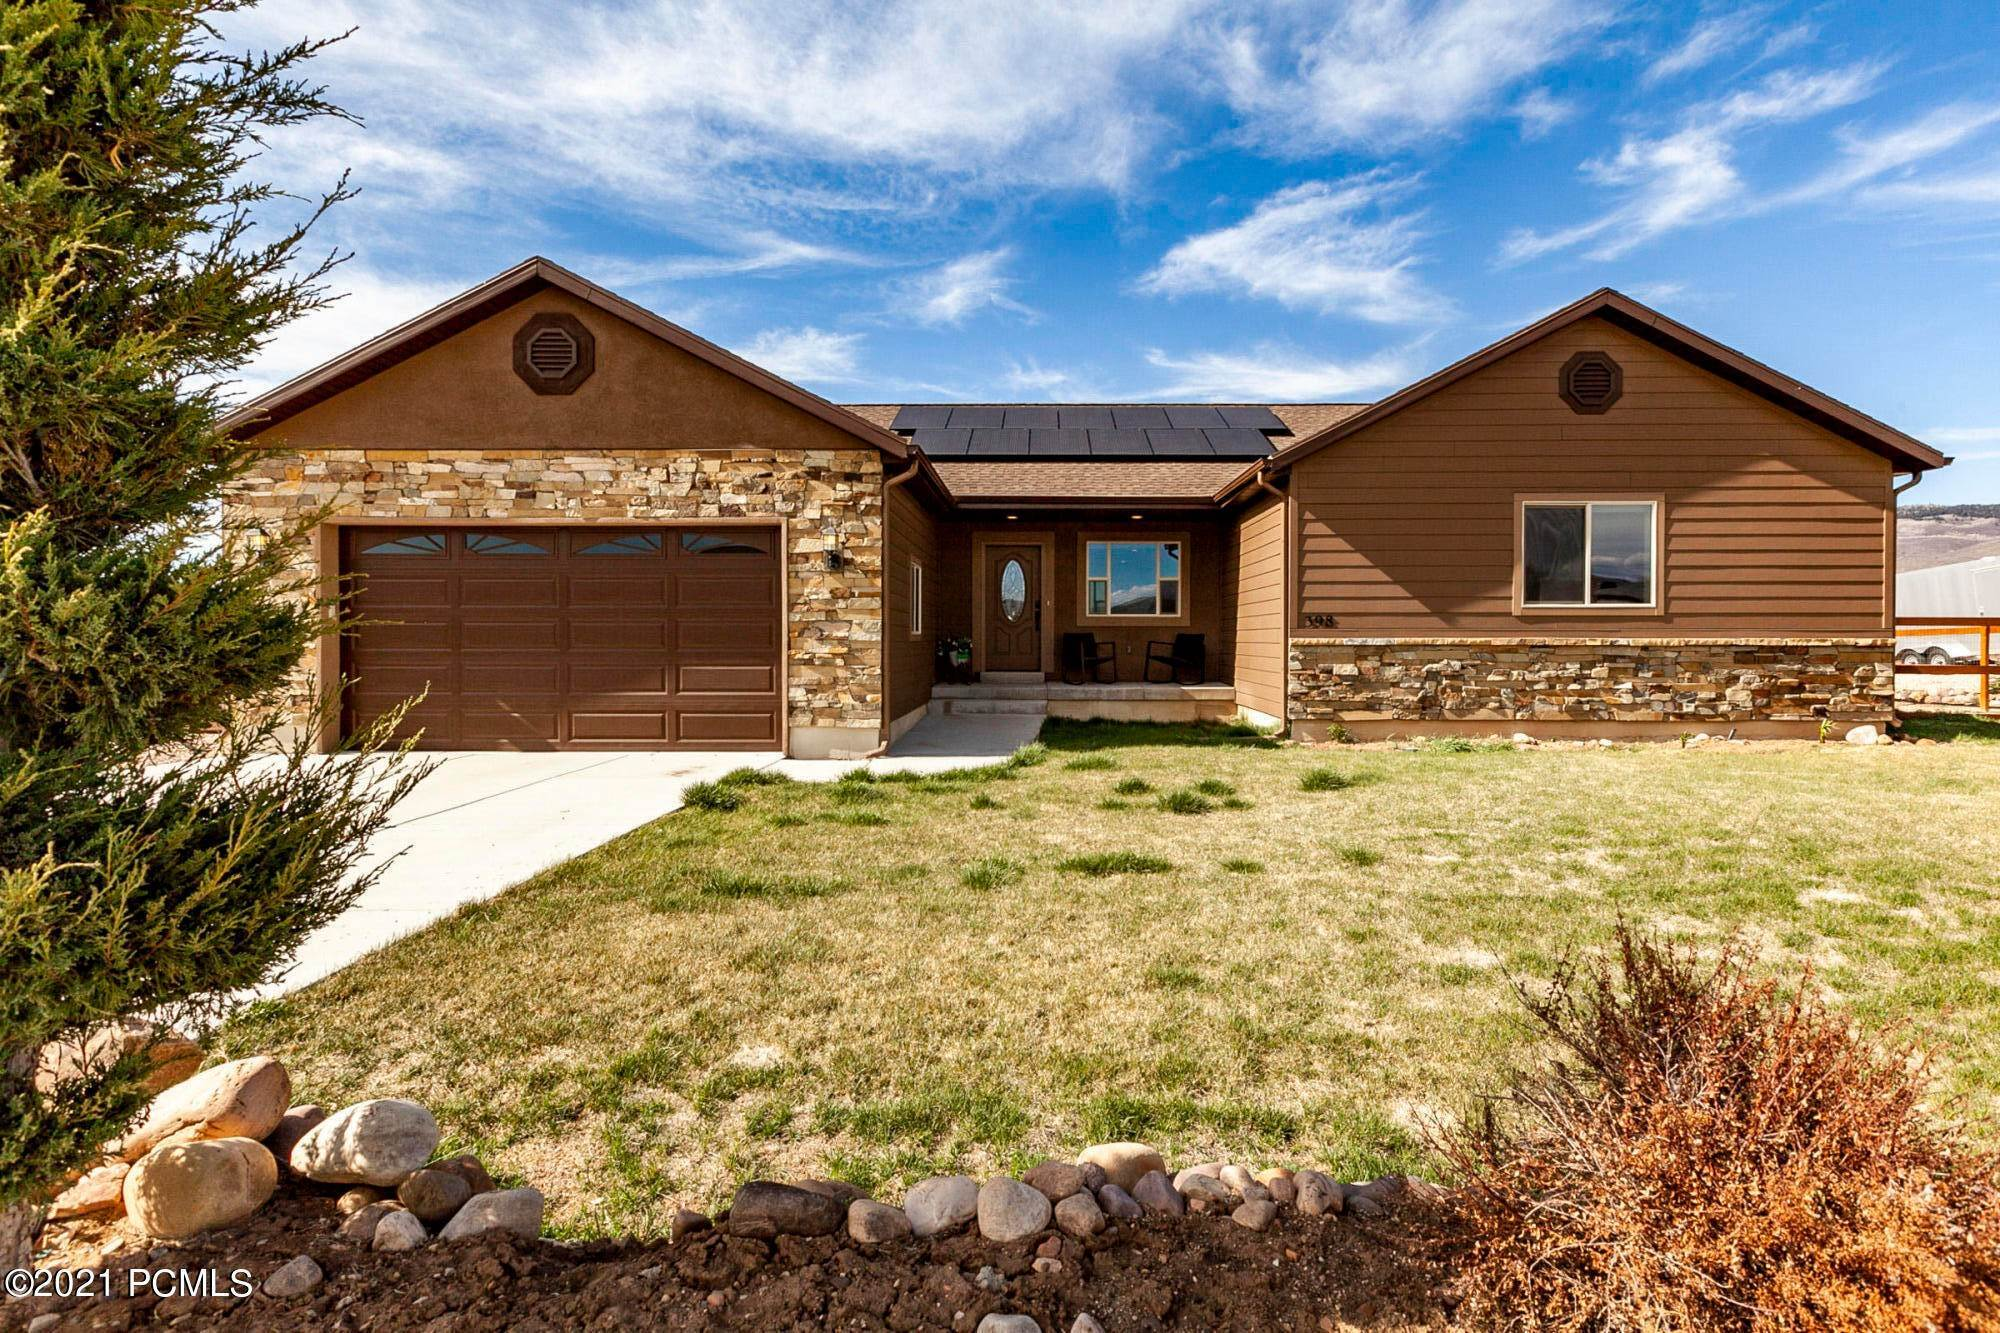 Single Family Homes for Sale at 398 River Bluffs Drive Francis, Utah 84036 United States